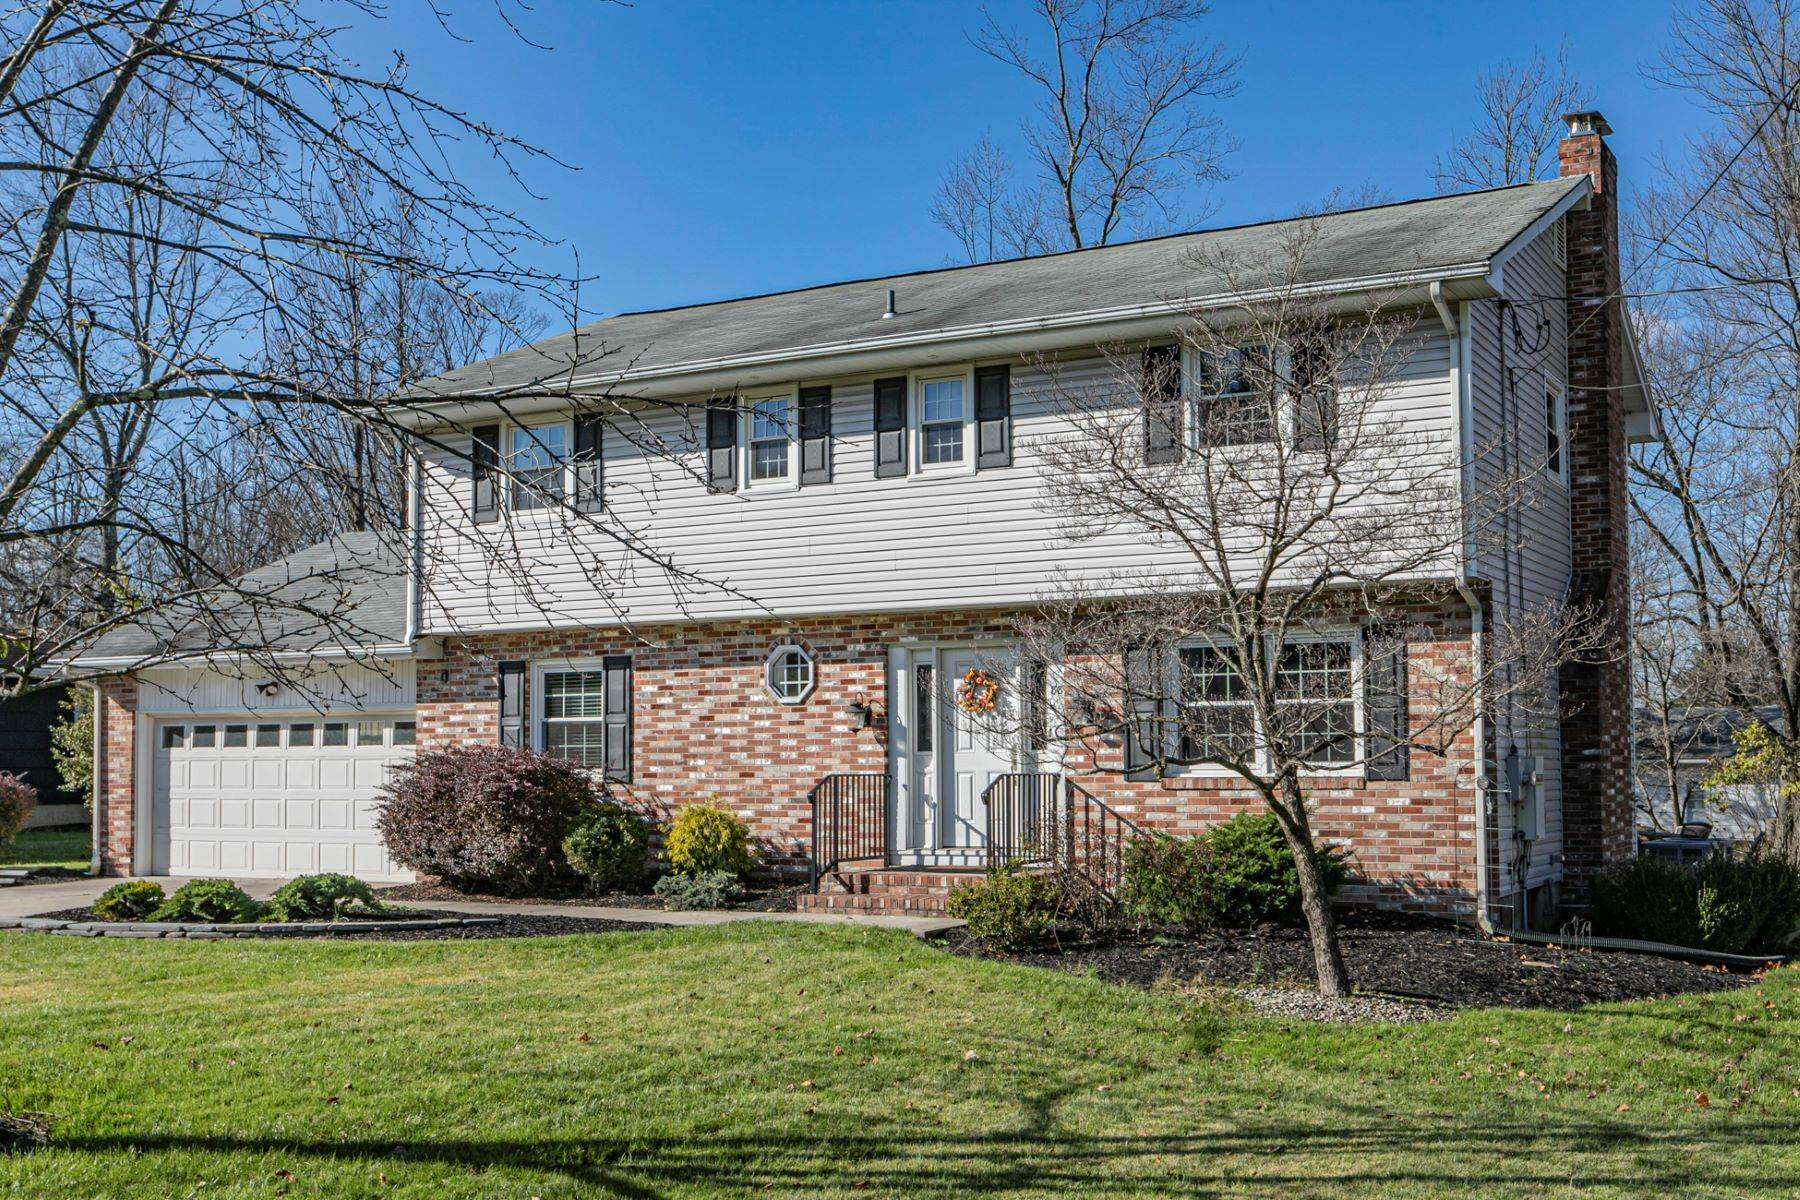 Single Family Homes for Sale at Pristine and Stylish, with Sunshine for Days 88 Mountainview Road Ewing, New Jersey 08628 United States